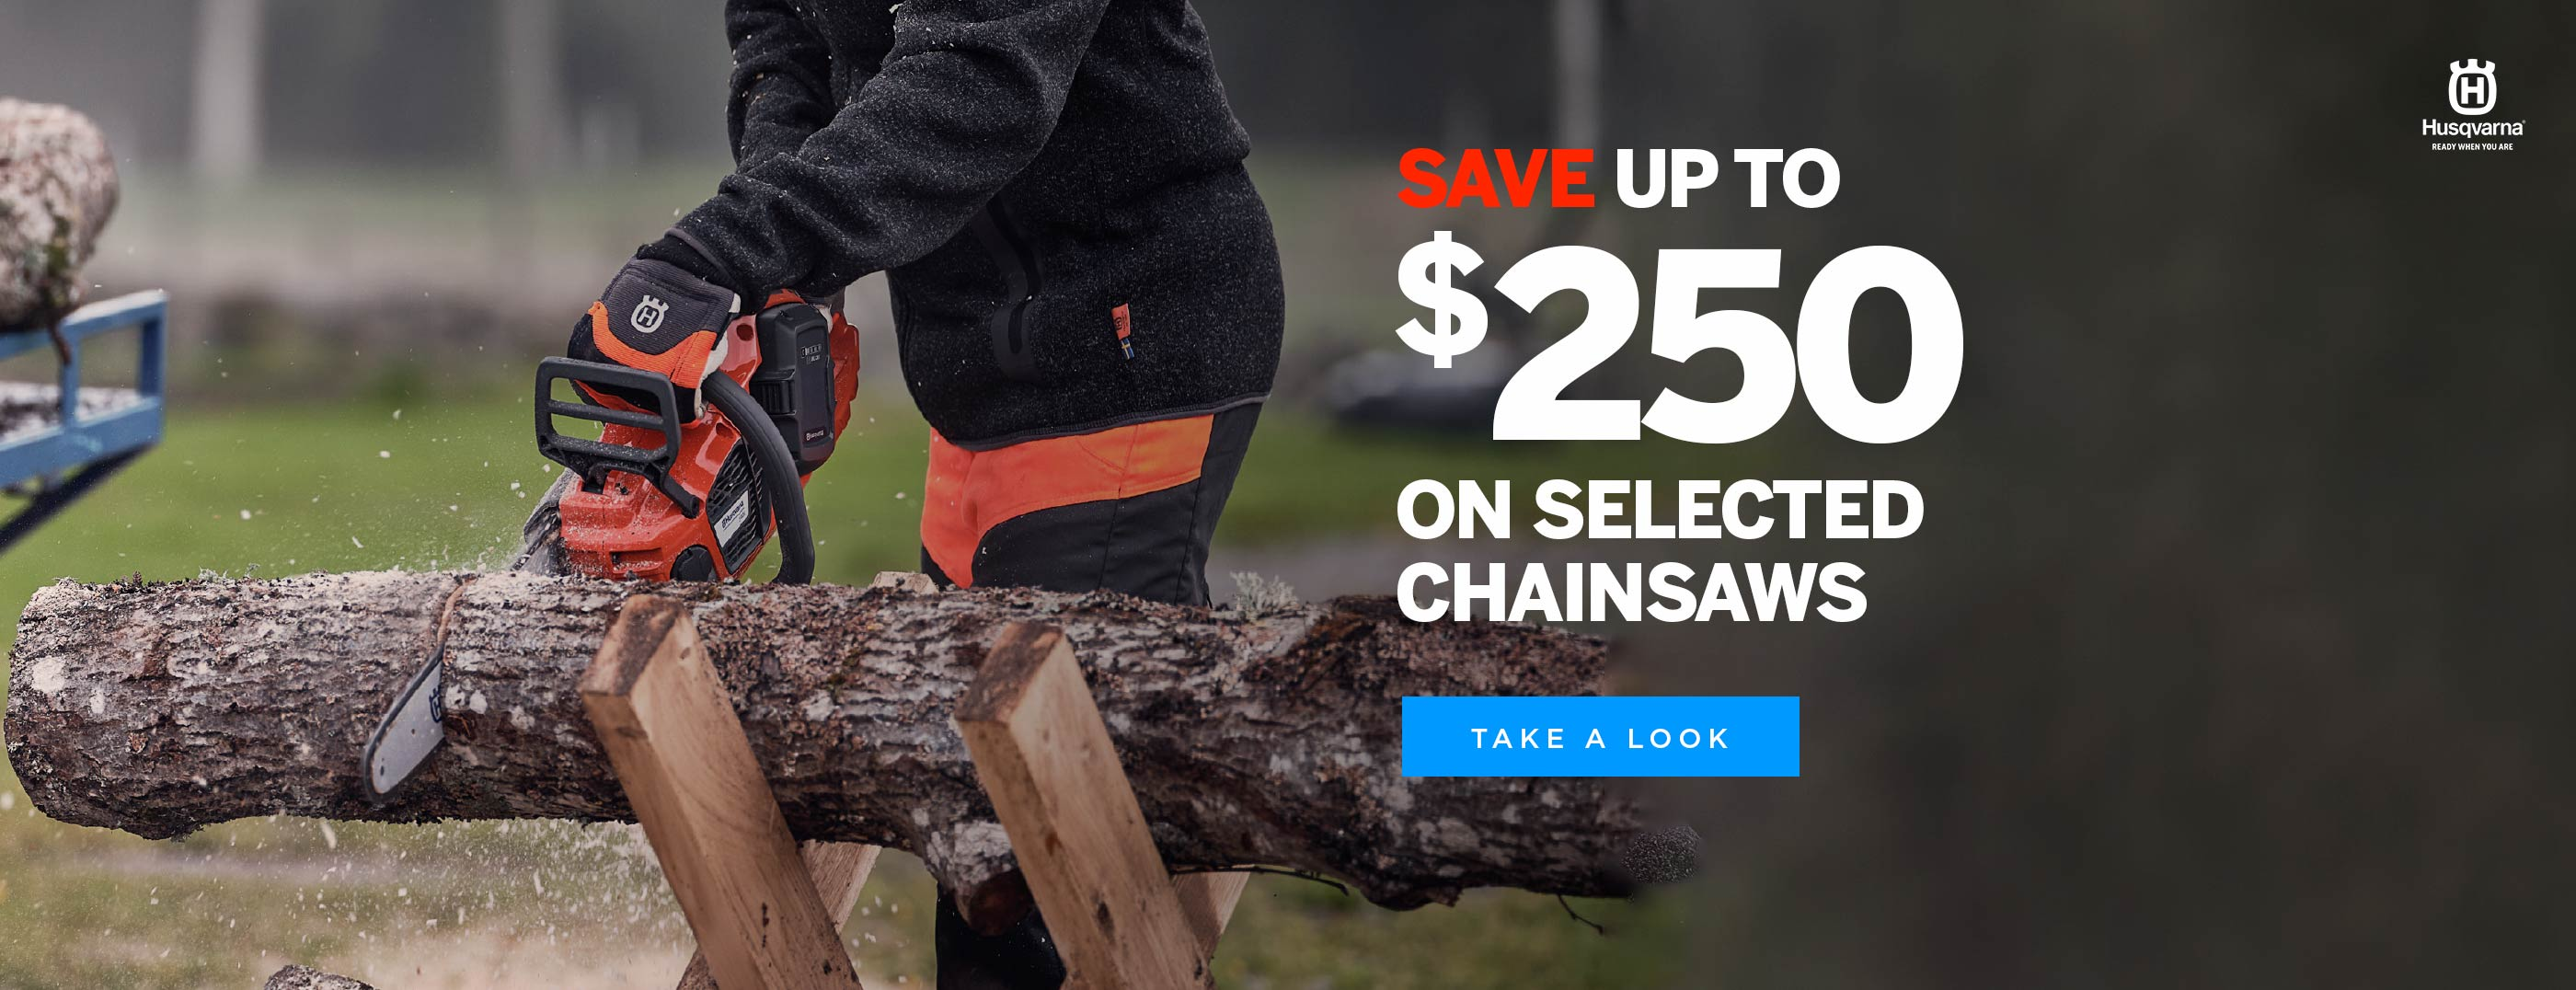 Save up to $250 on Selected Husqvarna Chainsaws